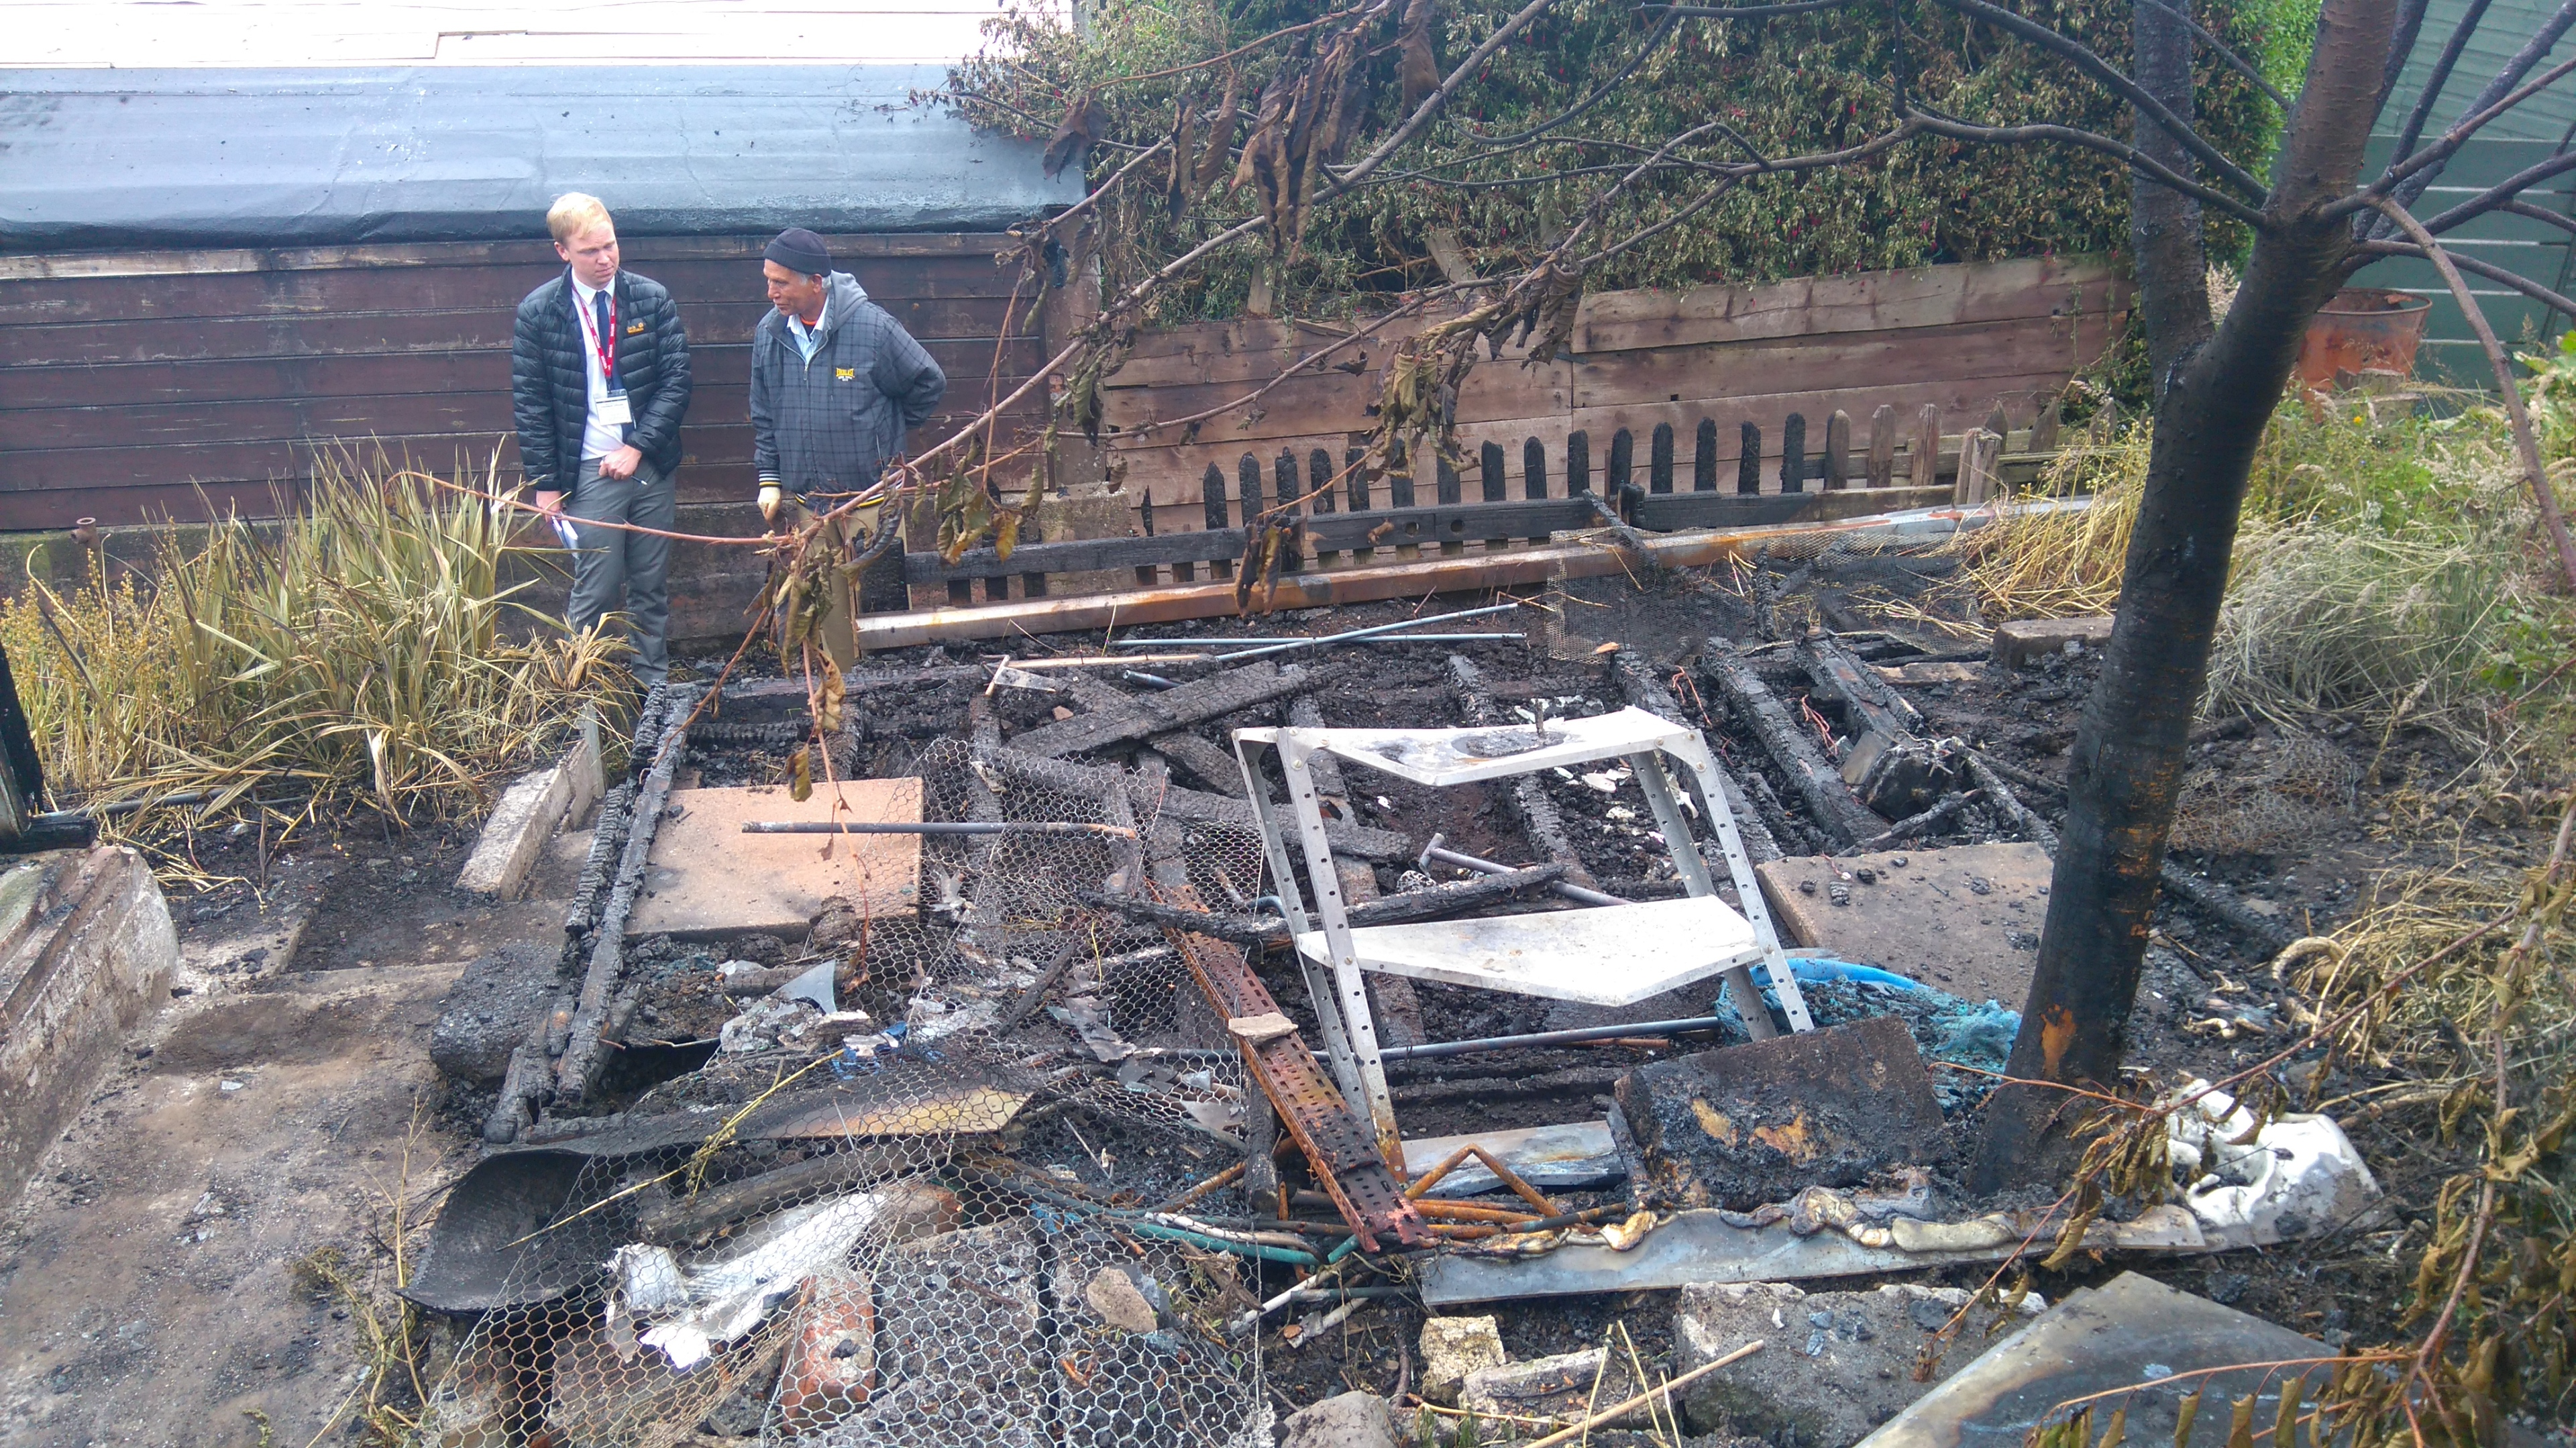 Mr Ahmed inspects the ruins of his son's allotment shed.